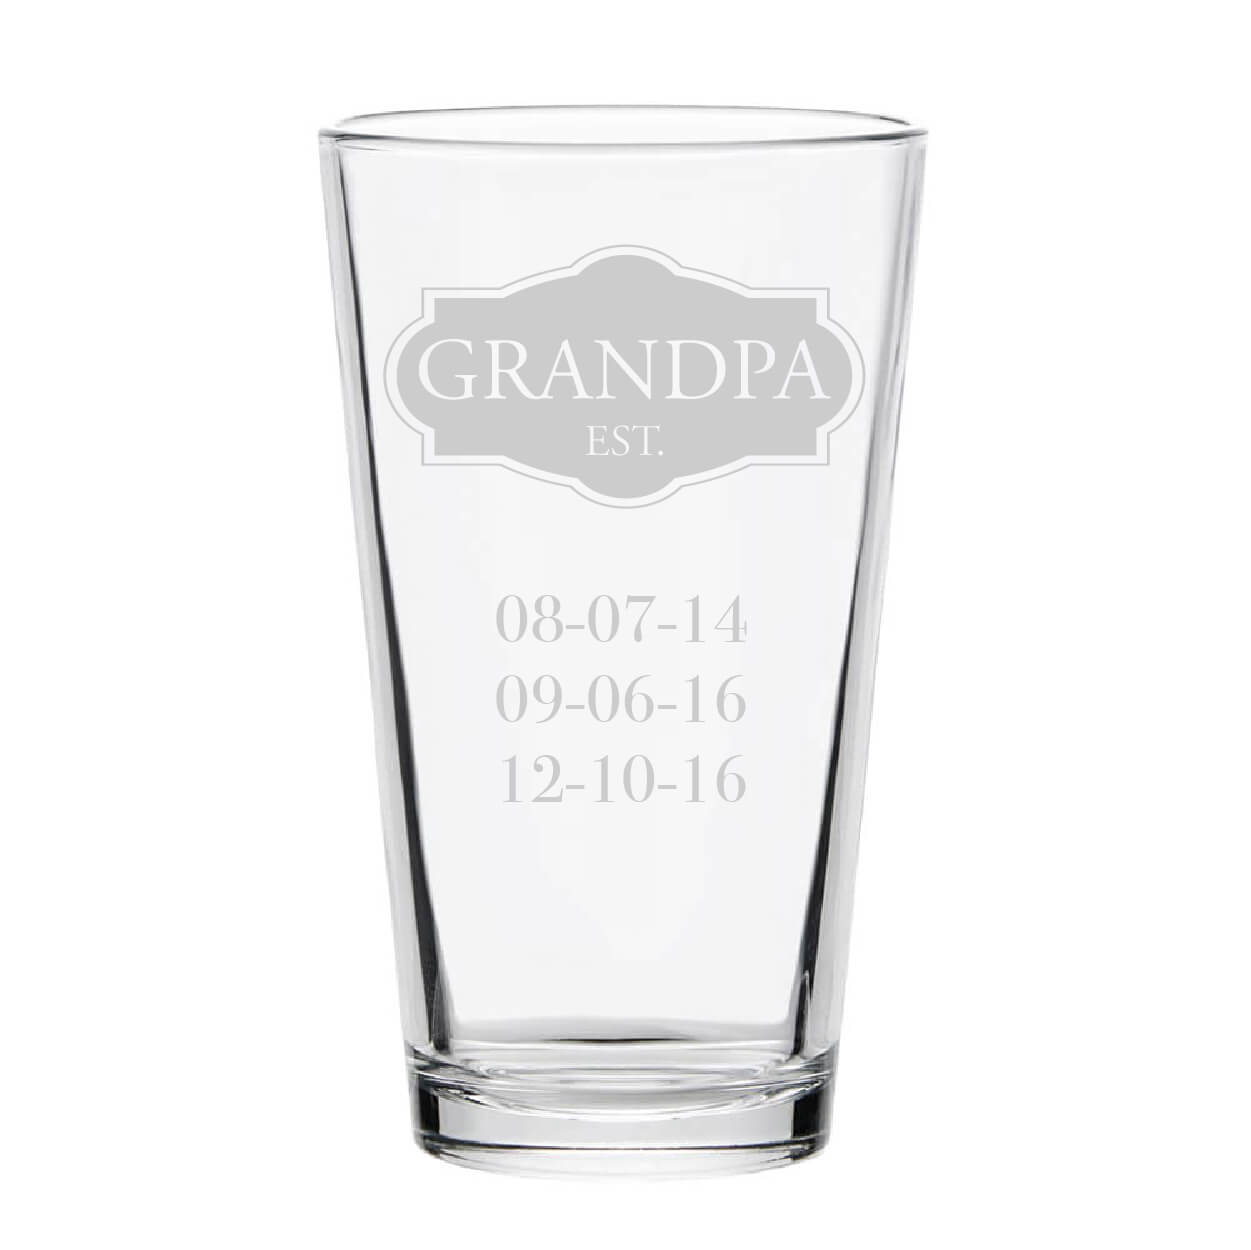 Grandpa Established Personalized Pint Glass